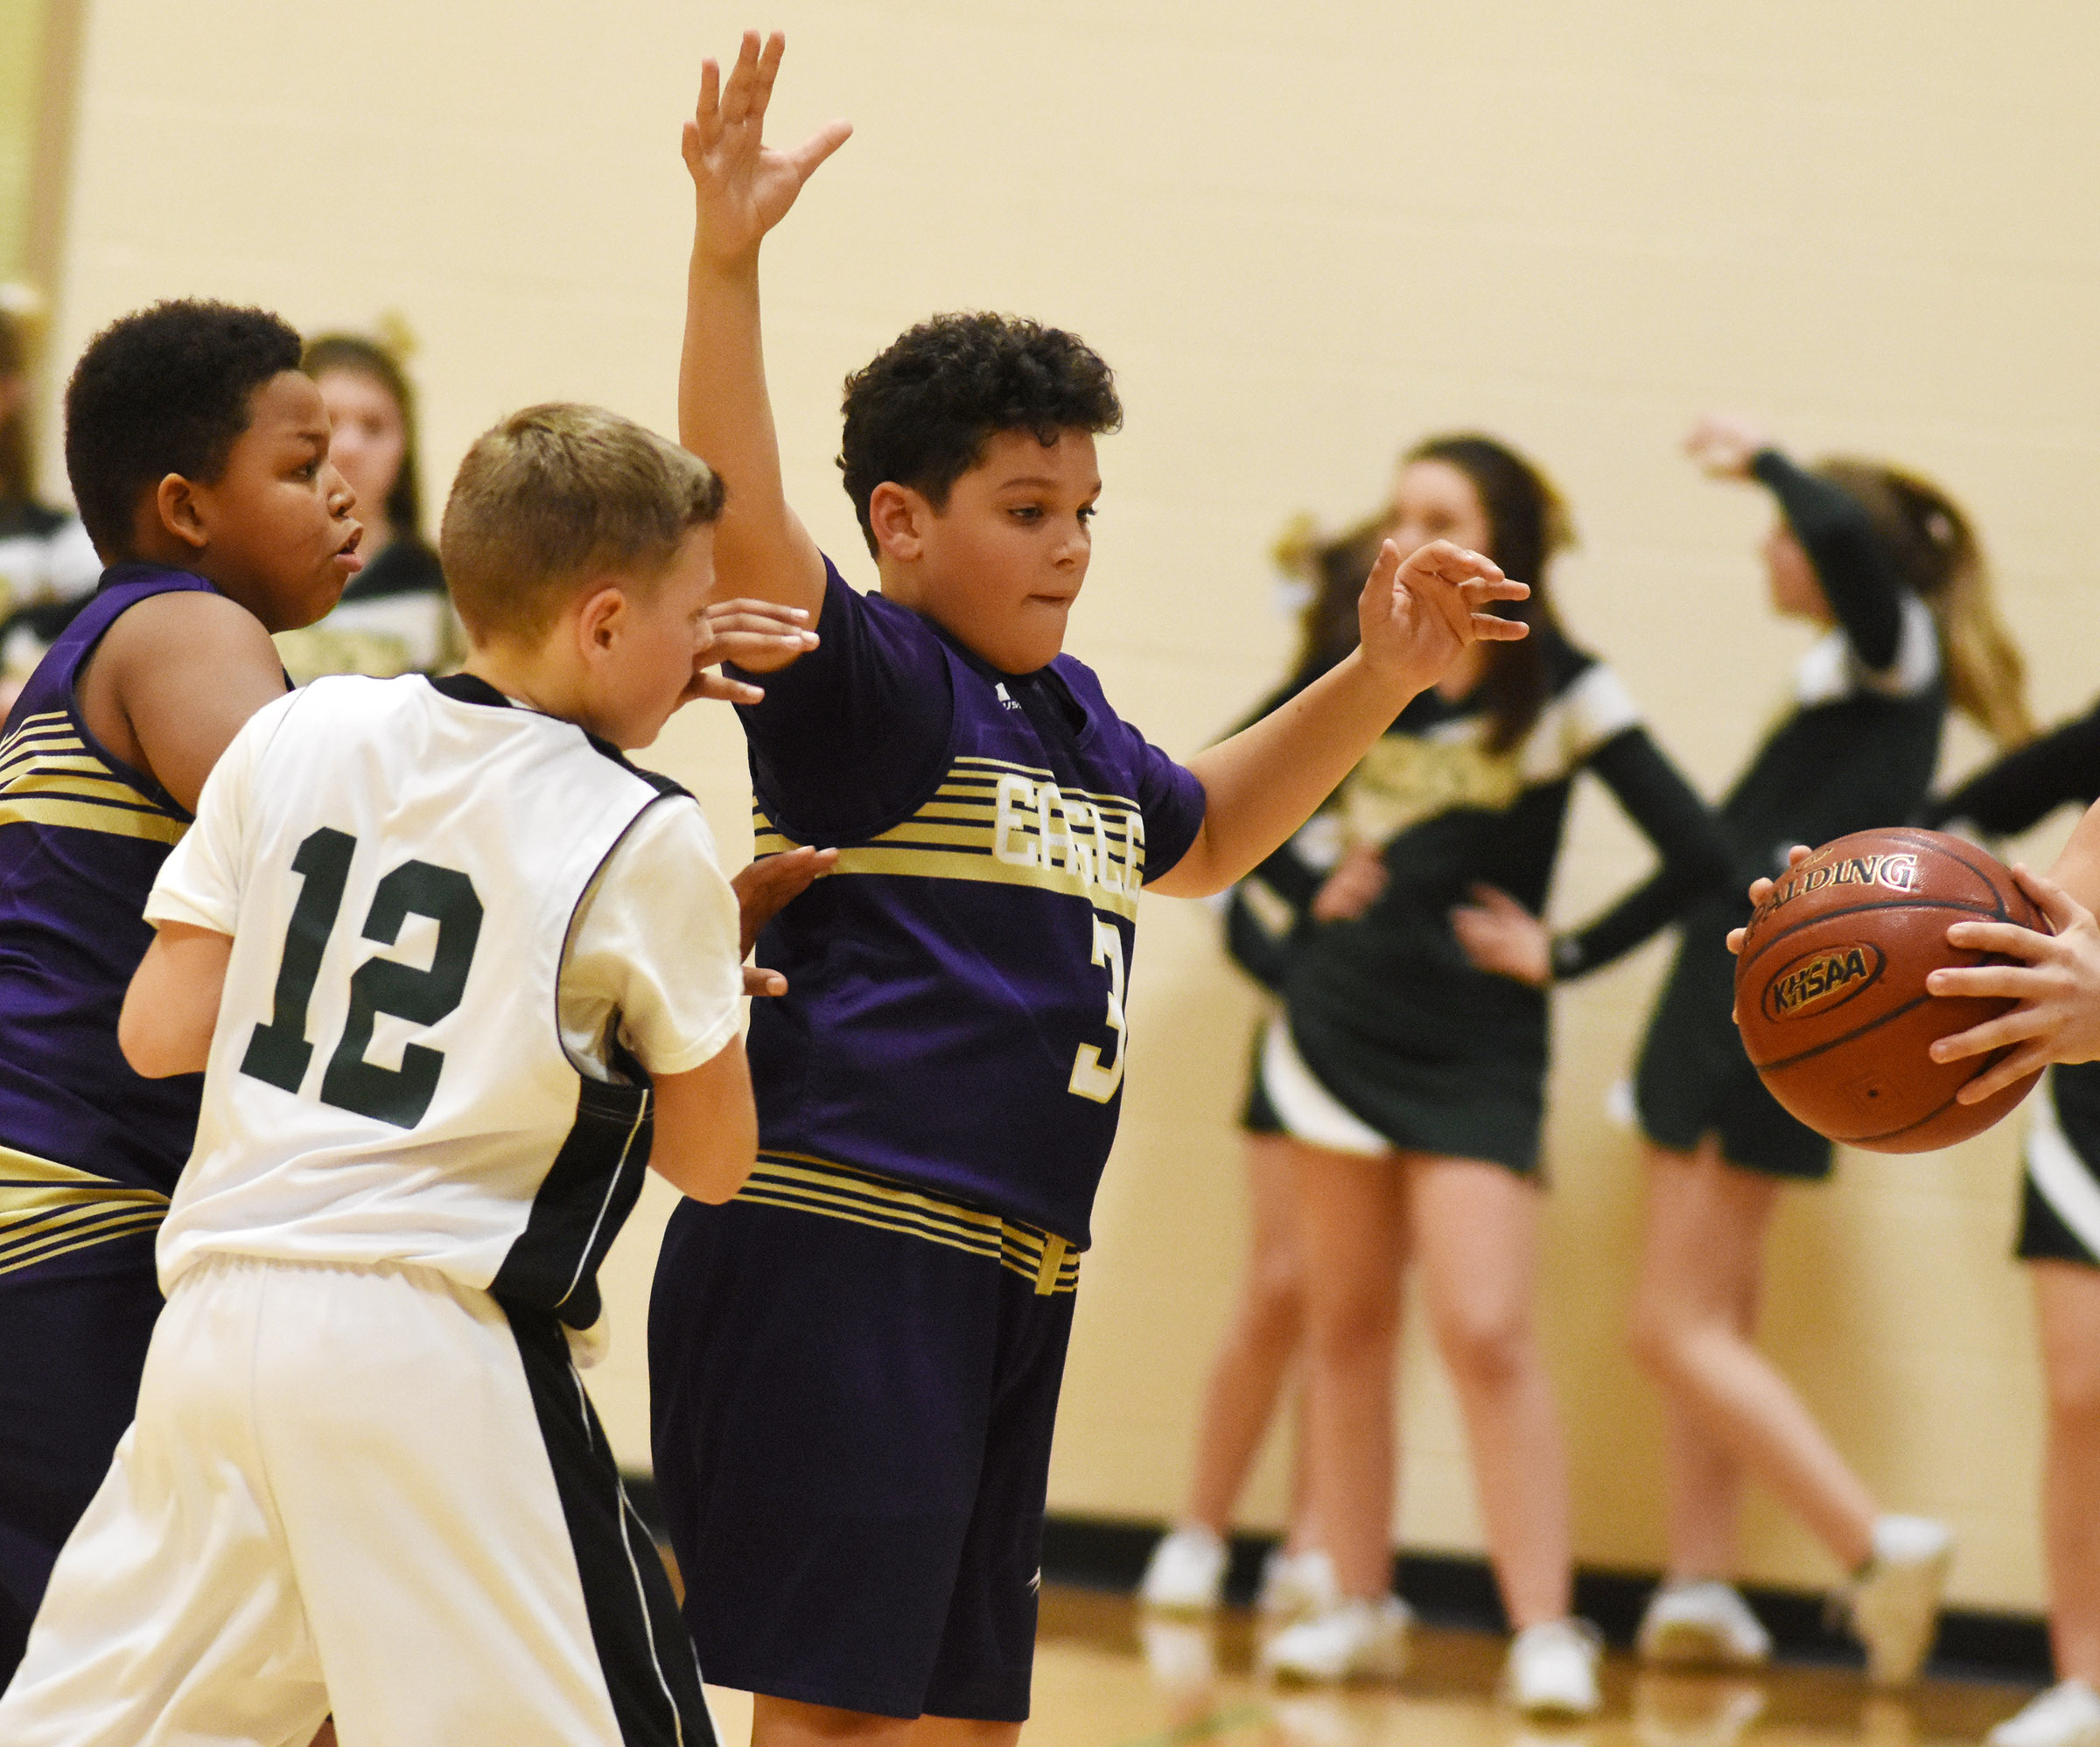 CMS seventh-graders Keondre Weathers, at left, and Kaydon Taylor battle for the ball.